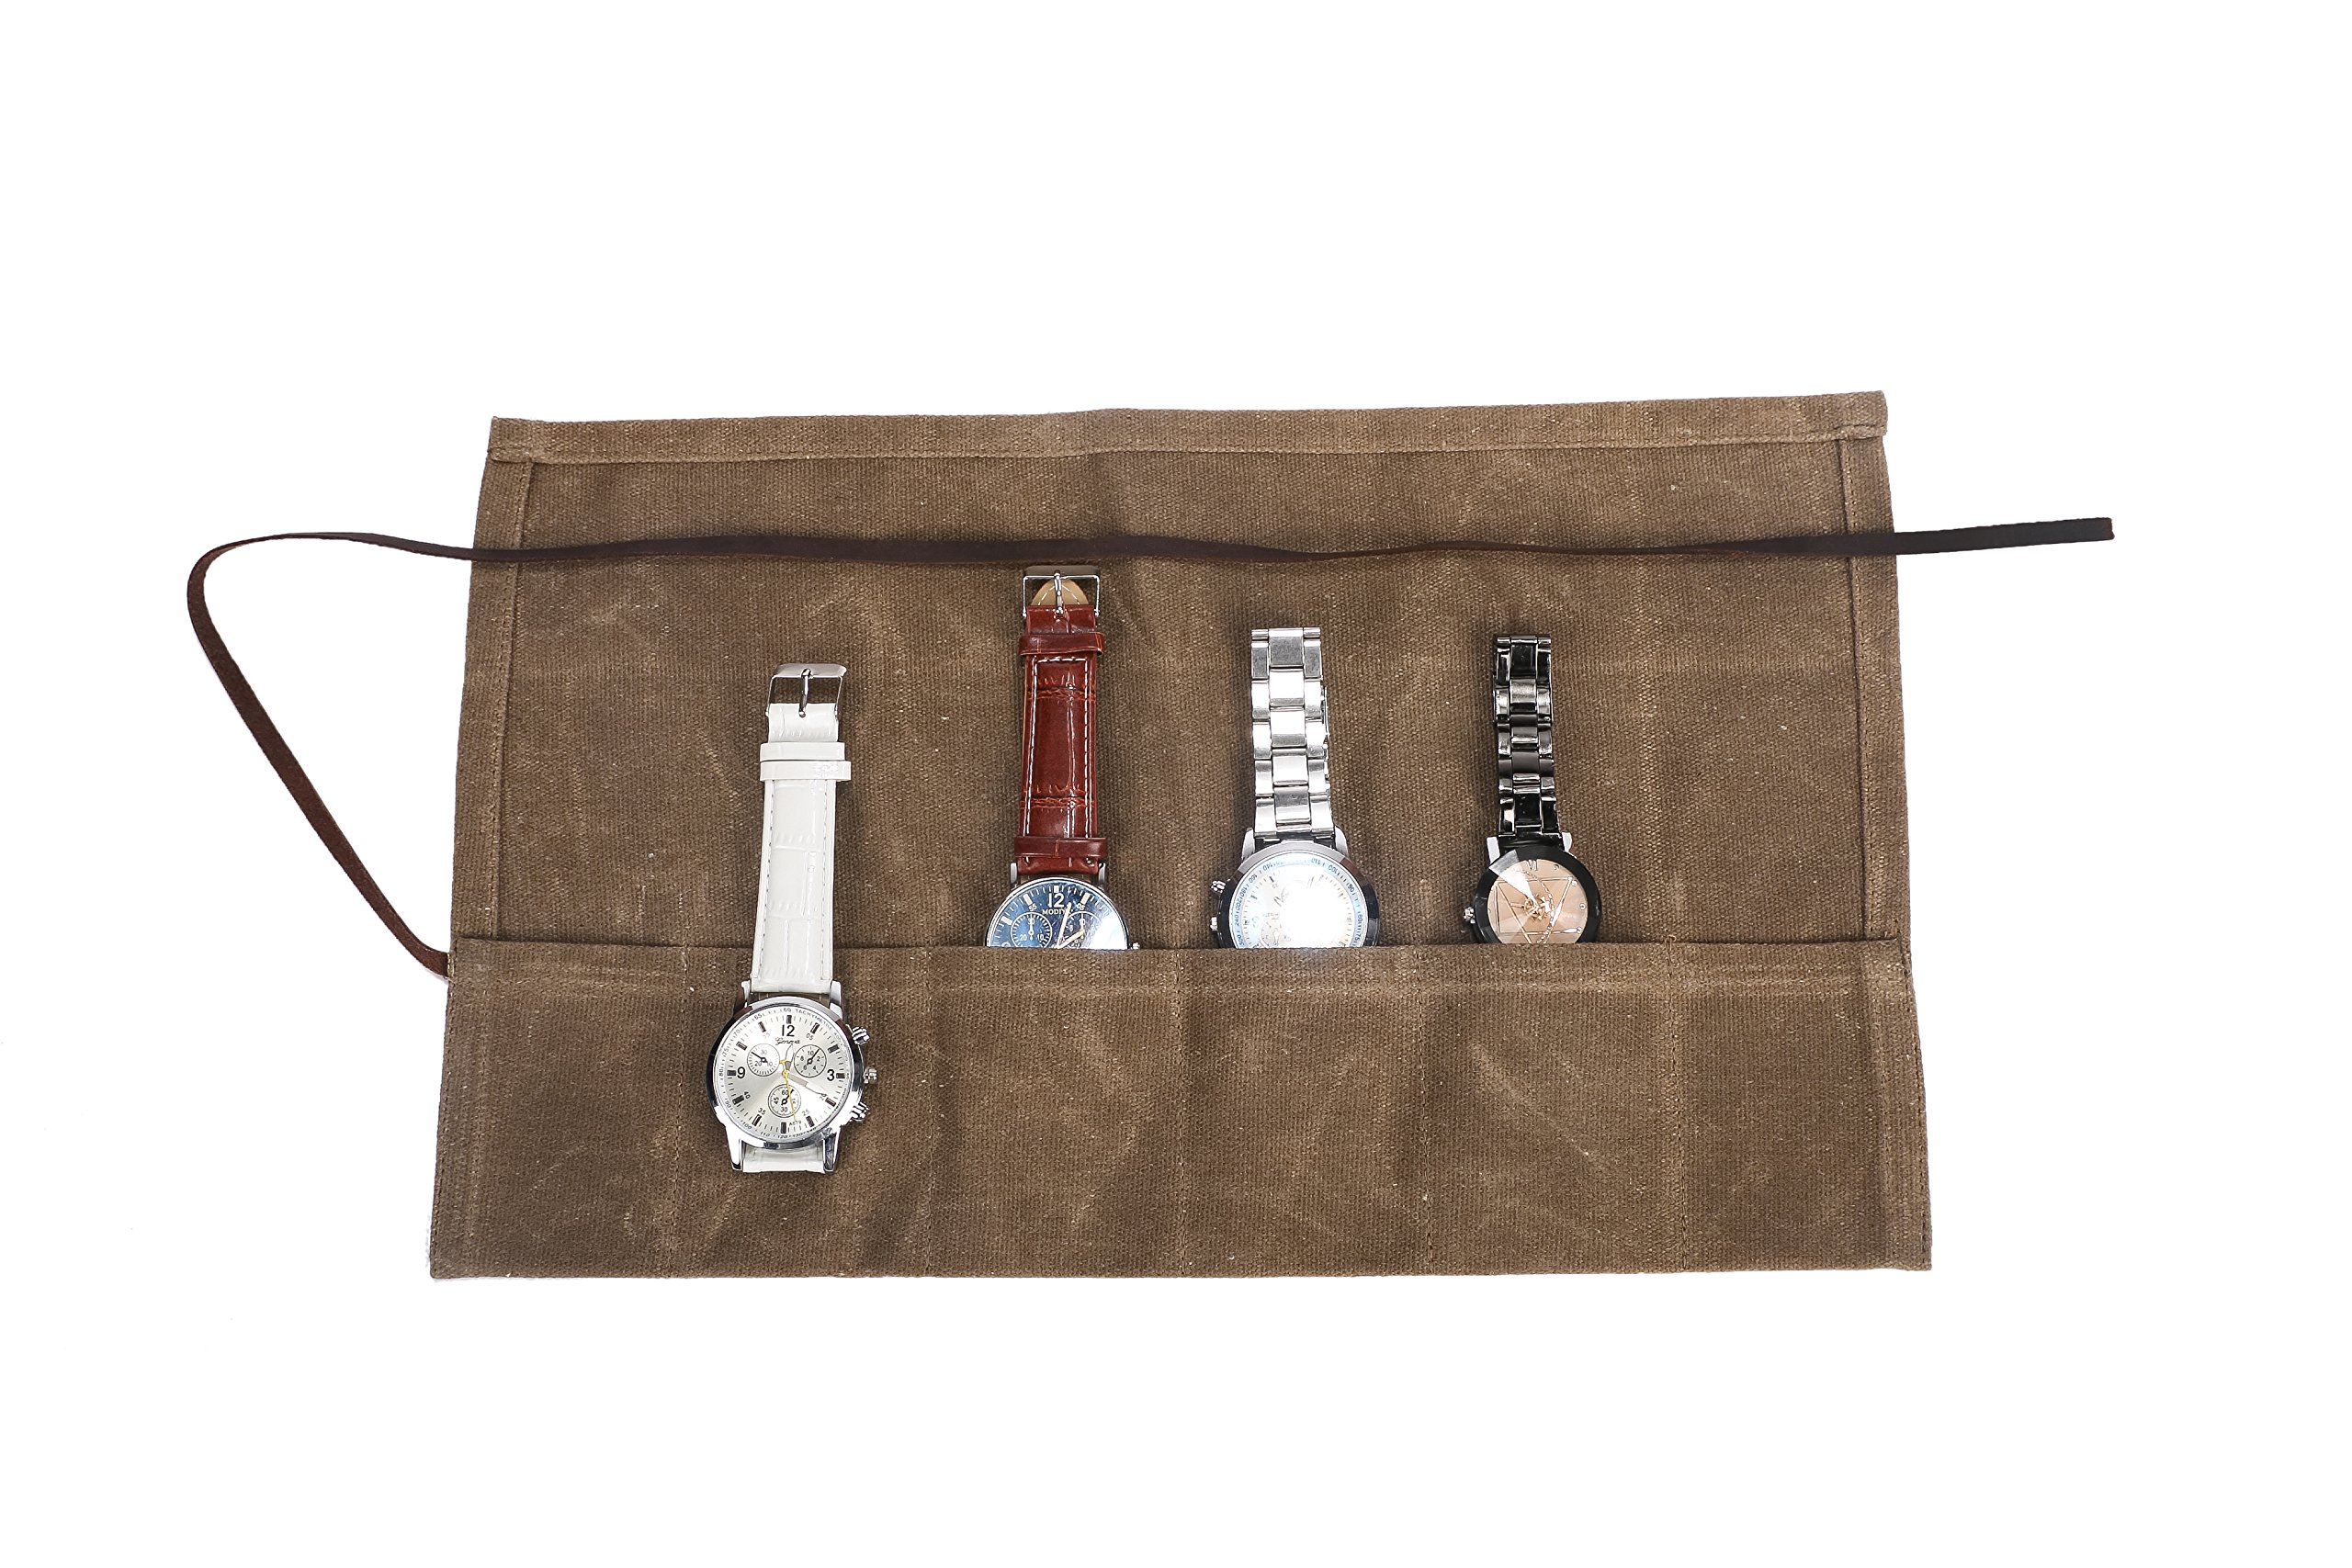 Waxed Canvas Watch Roll Handmade Waterproof Multi-Purpose Travel Case Watch Roll-up Organizer Holds 6 Wristwatches Best Gift for Him Her Boyfriend Girlfriend Mom Dad Wife & Husband HGJ03-I